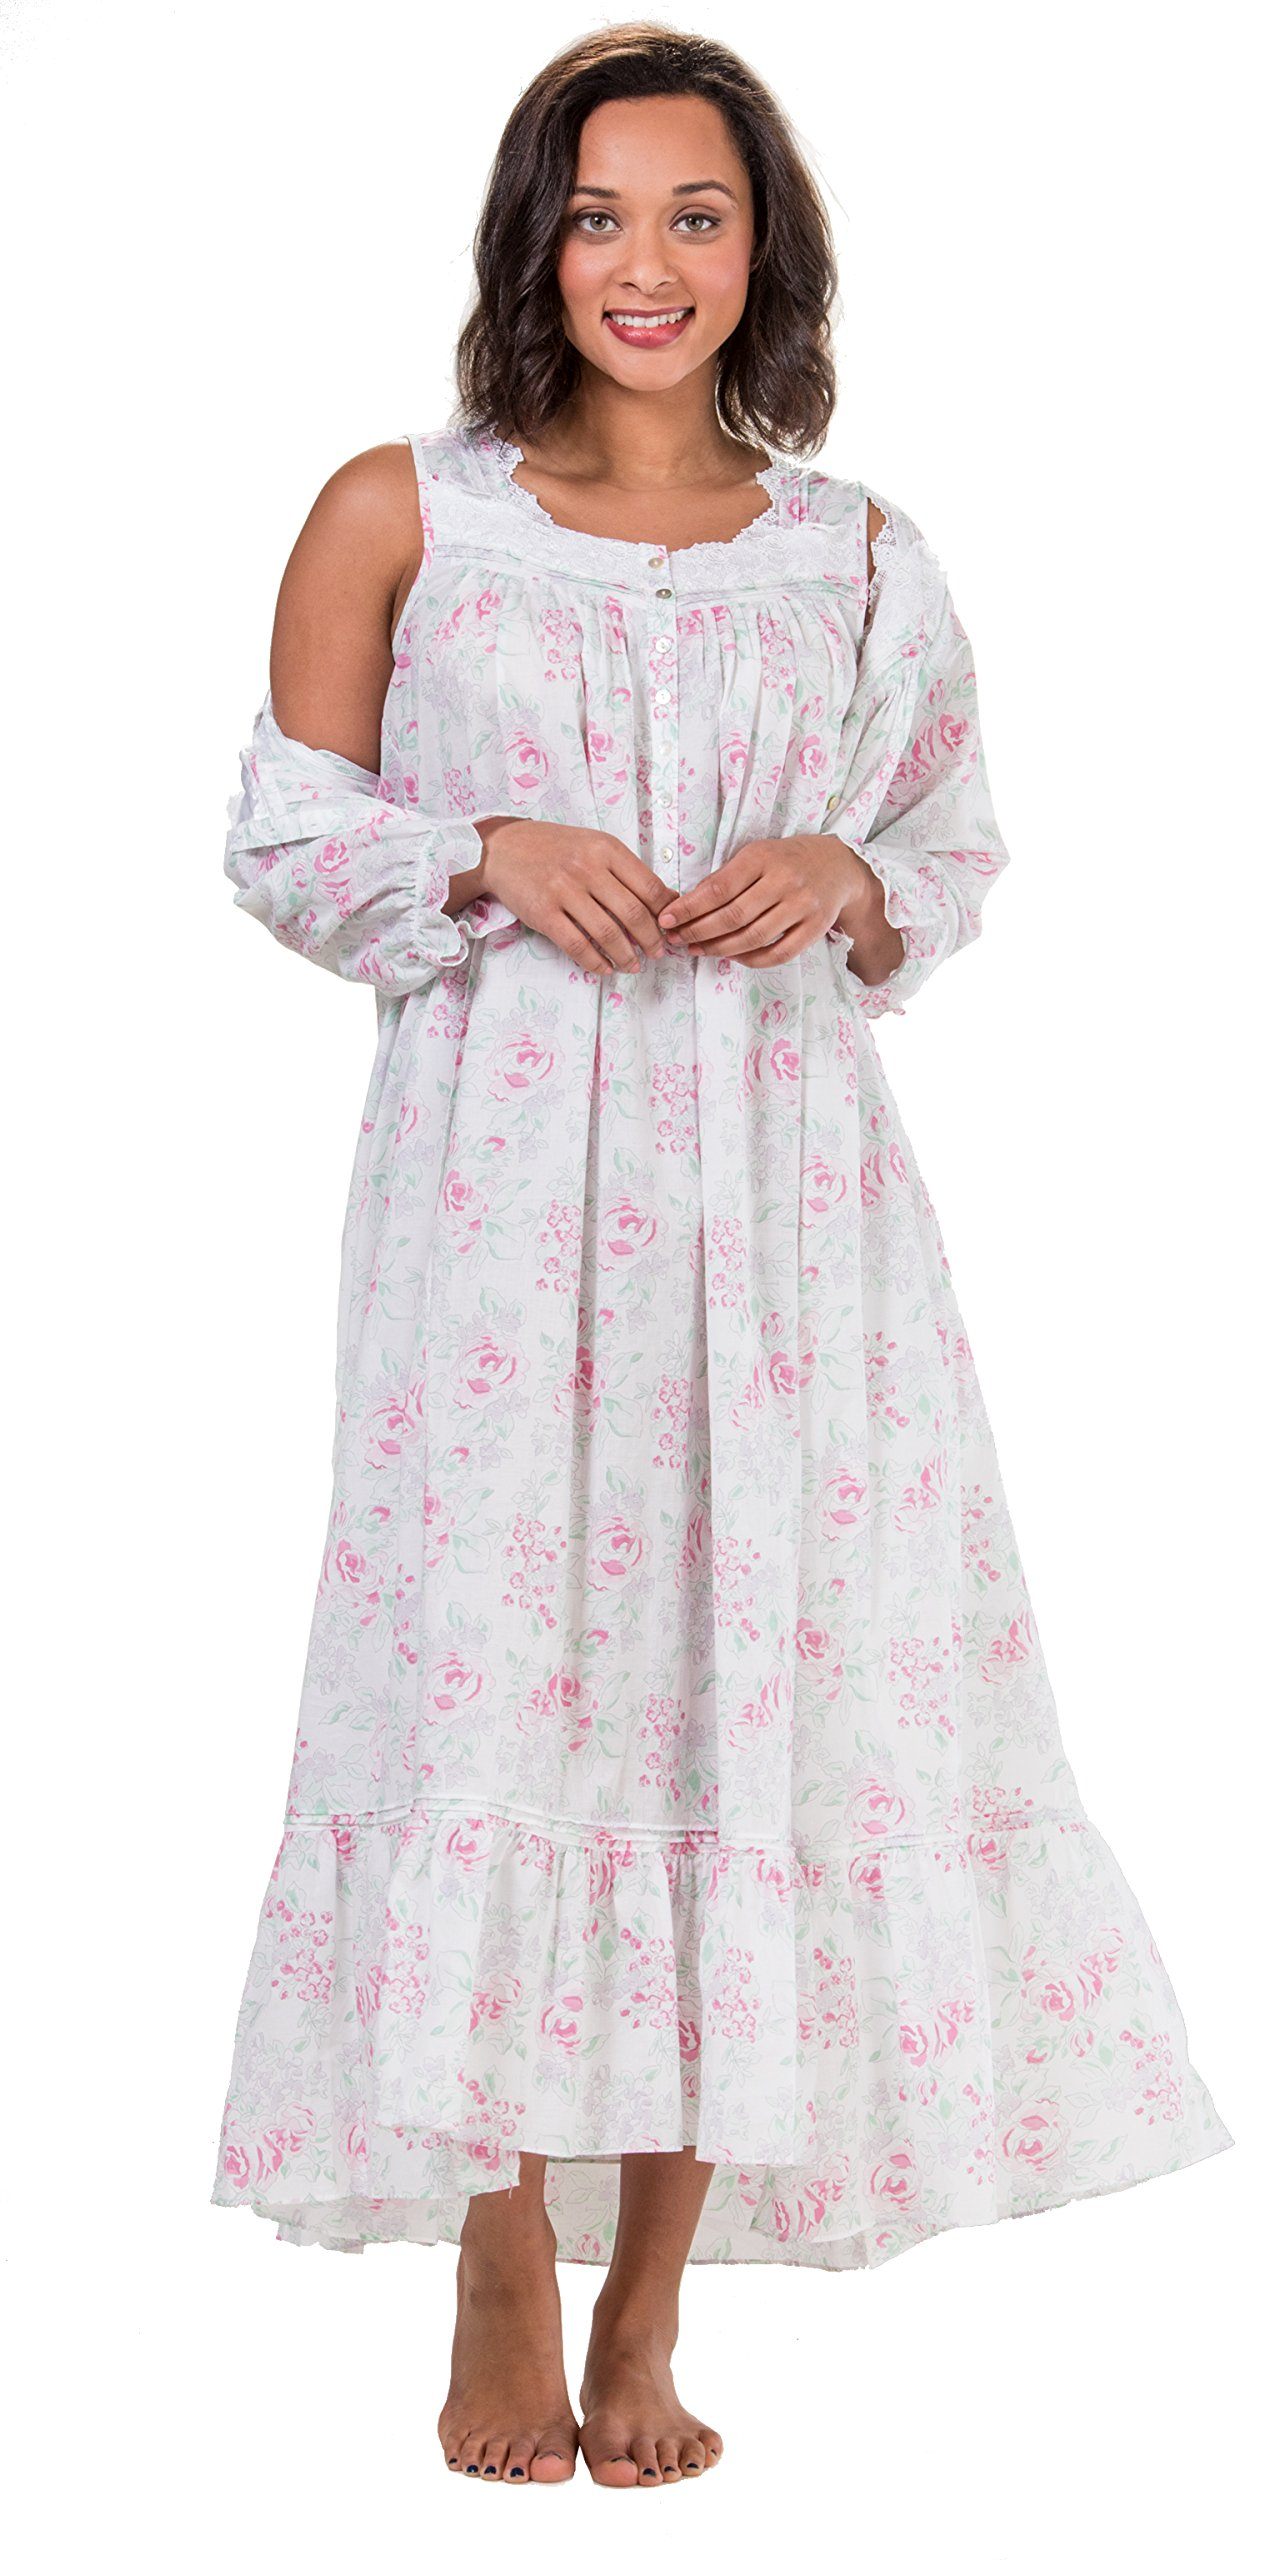 Eileen West Robe & Gown Set - Sleeveless Cotton Lawn Peignoir Set - Country Rose (White/Pink Floral, Large)